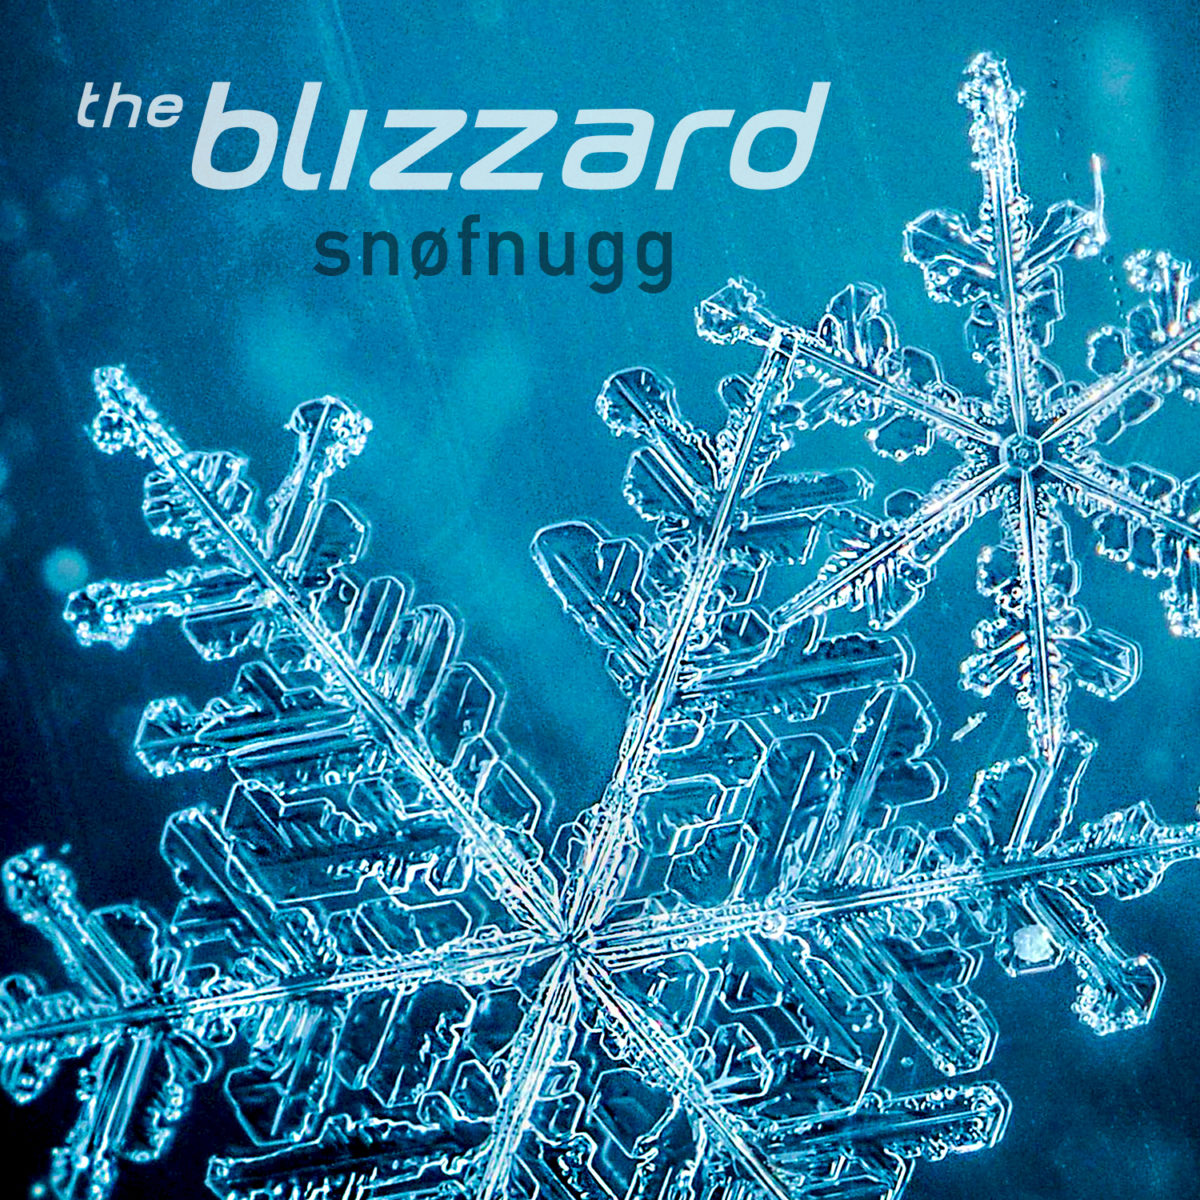 The Blizzard - Snøfnugg on Patreon